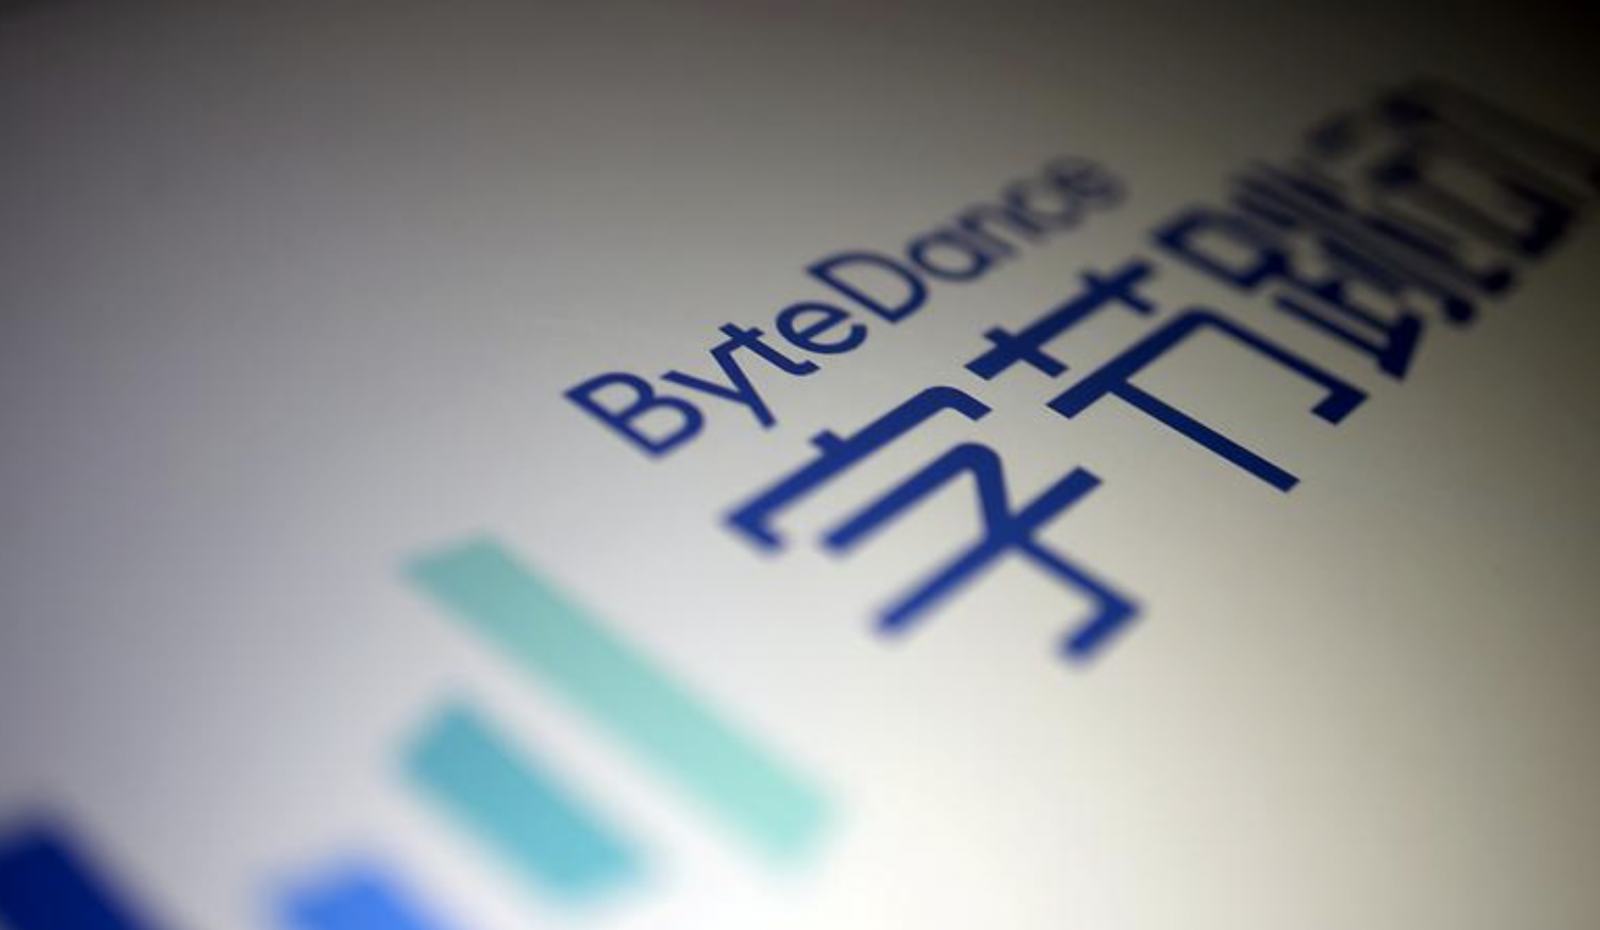 ByteDance developing Clubhouse-like app for China